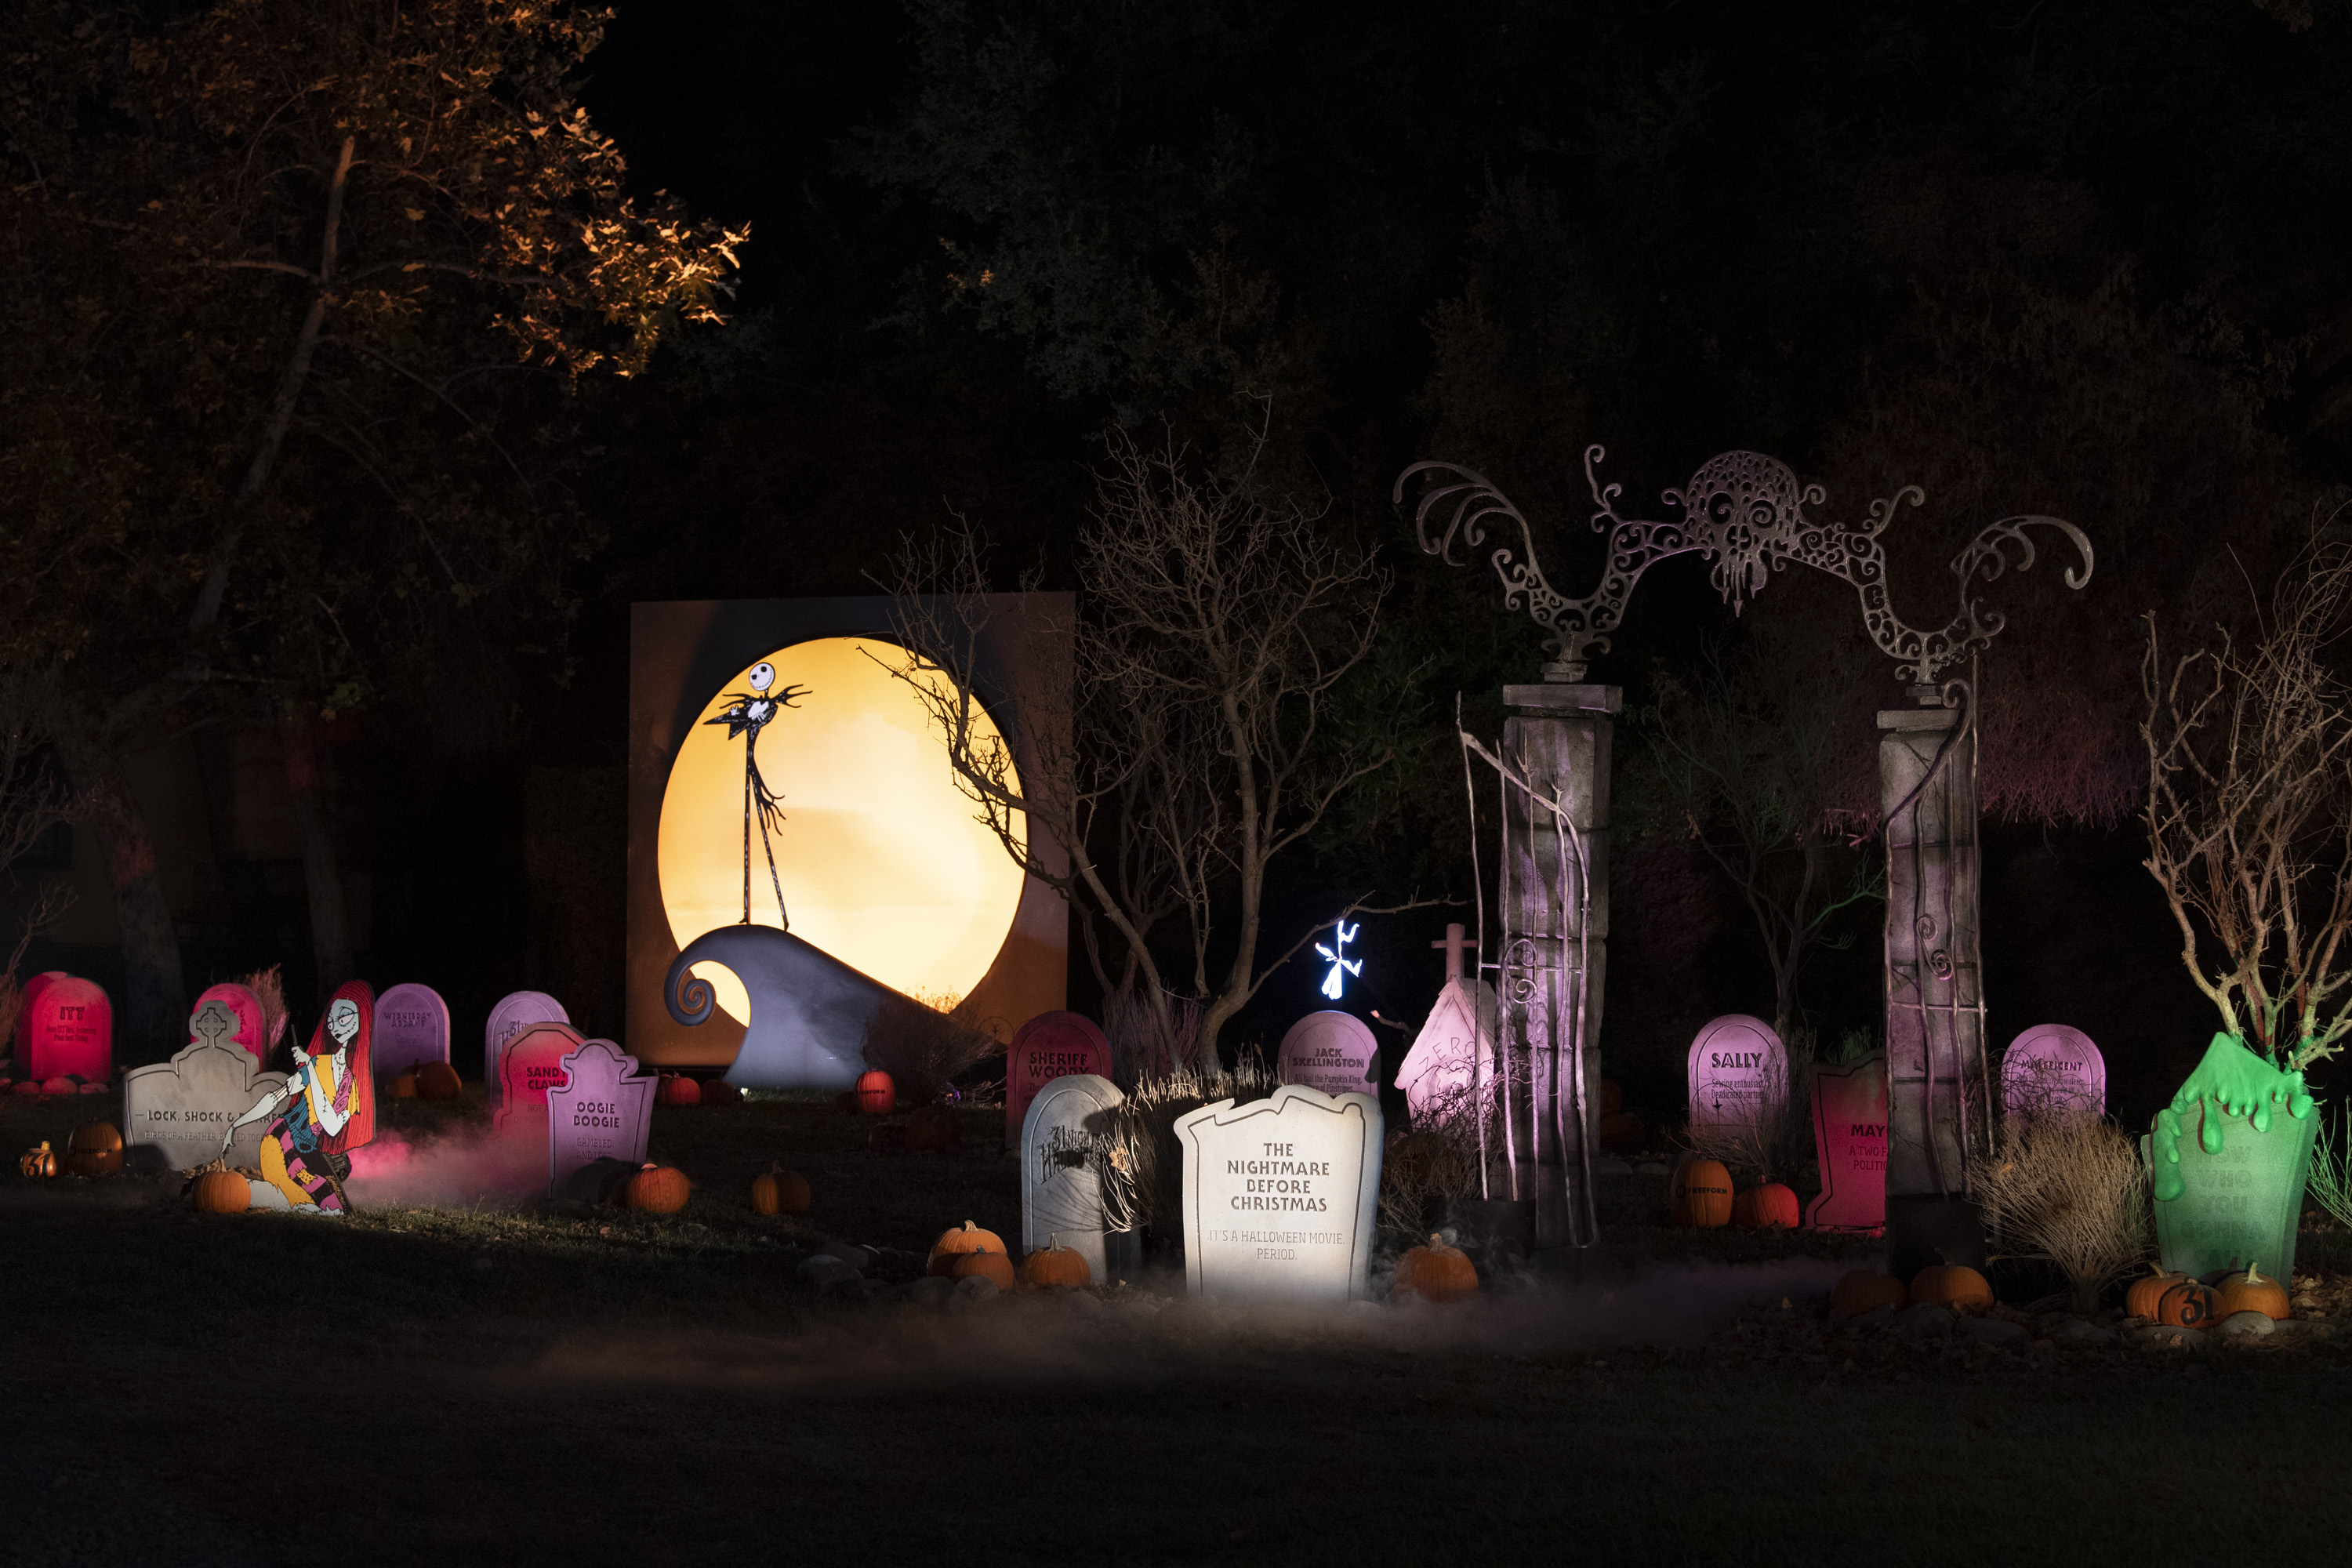 """FREEFORM'S HALLOWEEN ROAD – The network is kicking things off with """"Freeform's Halloween Road,"""" a drive-thru experience filled with tricks and treats for Halloween lovers in the Los Angeles area. The FREE experience will take place at Heritage Square Museum in Los Angeles, California, and is open to the public from FRIDAY, OCT. 2, through SUNDAY, OCT. 4. (Freeform/Richard Harbaugh)FREEFORM'S HALLOWEEN ROAD"""